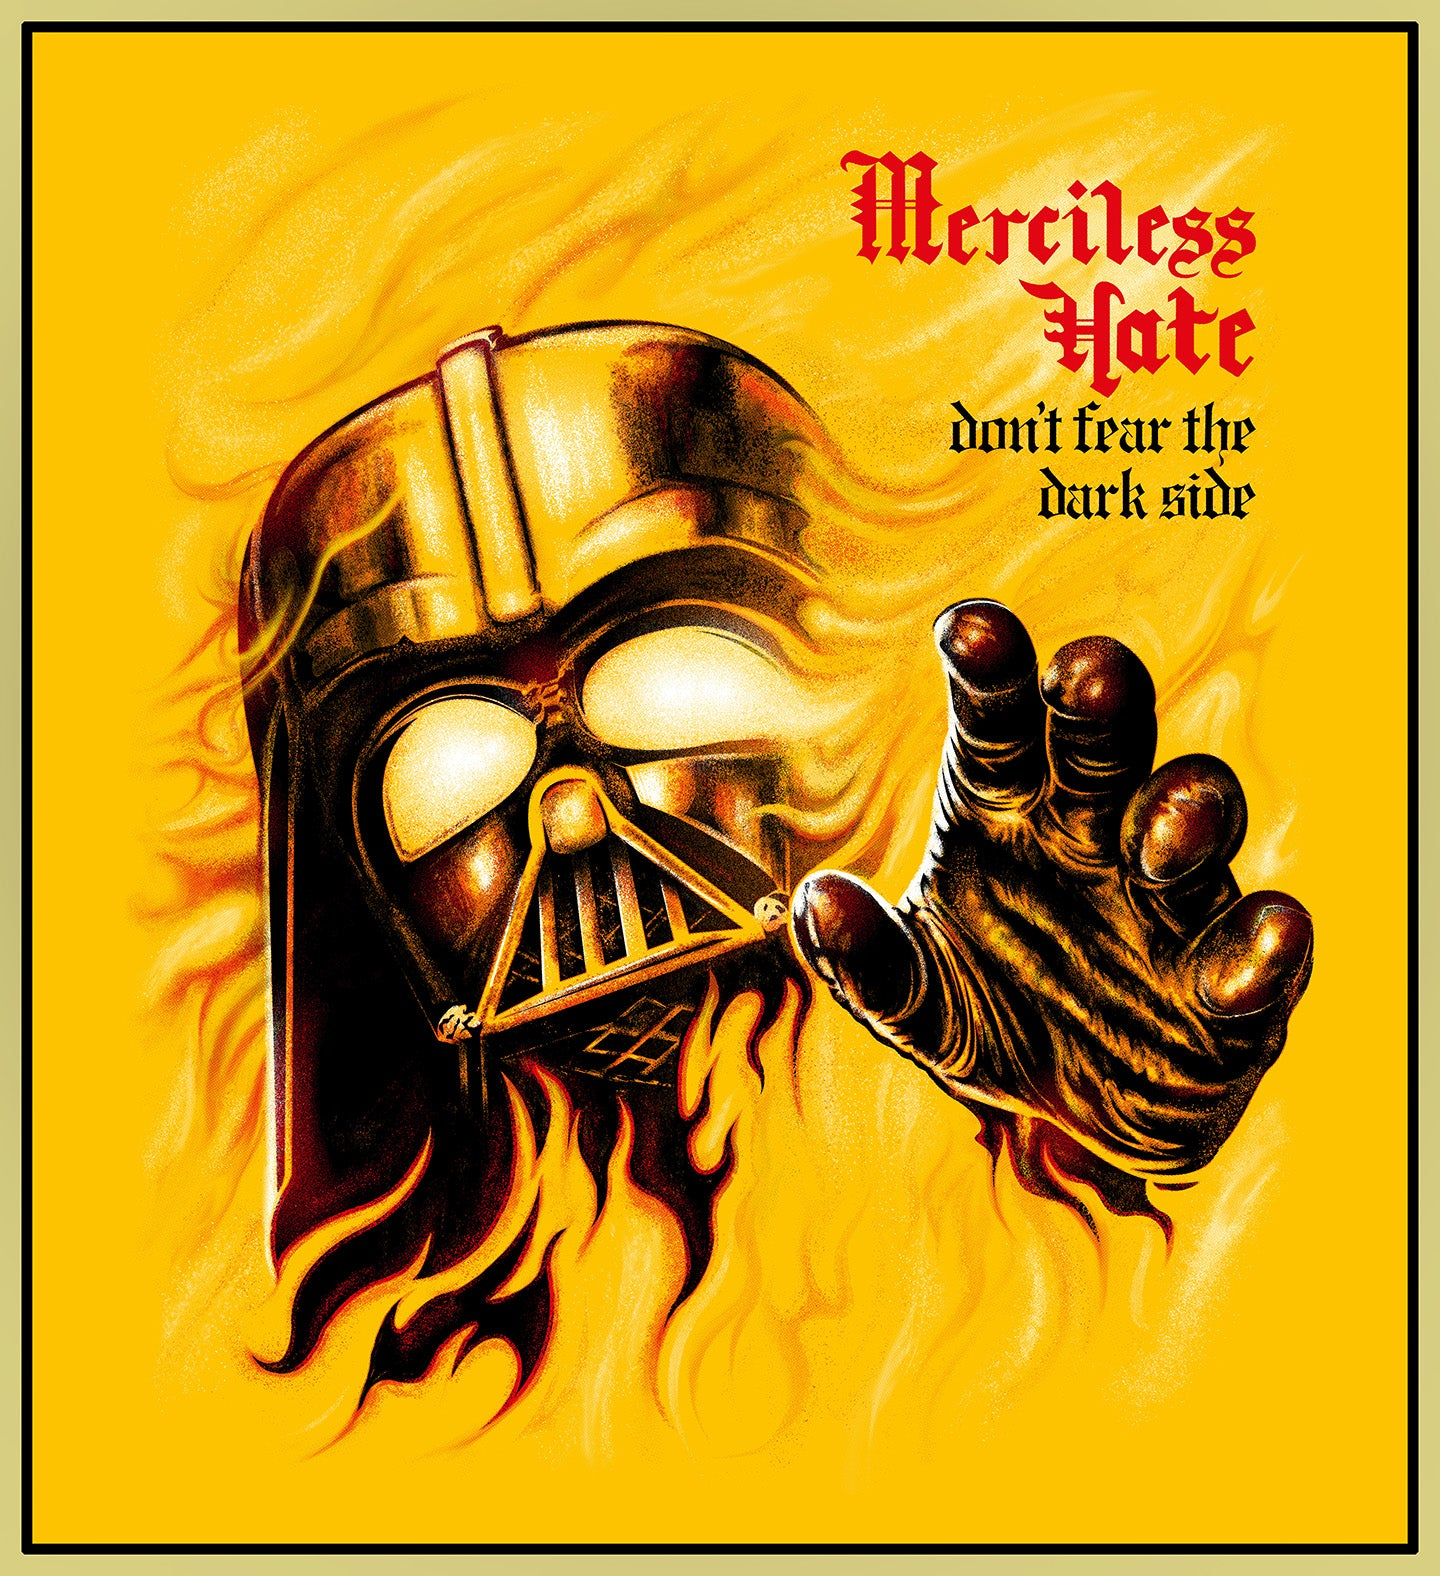 MERCILESS HATE - DARTH VADER TURBO TEE!